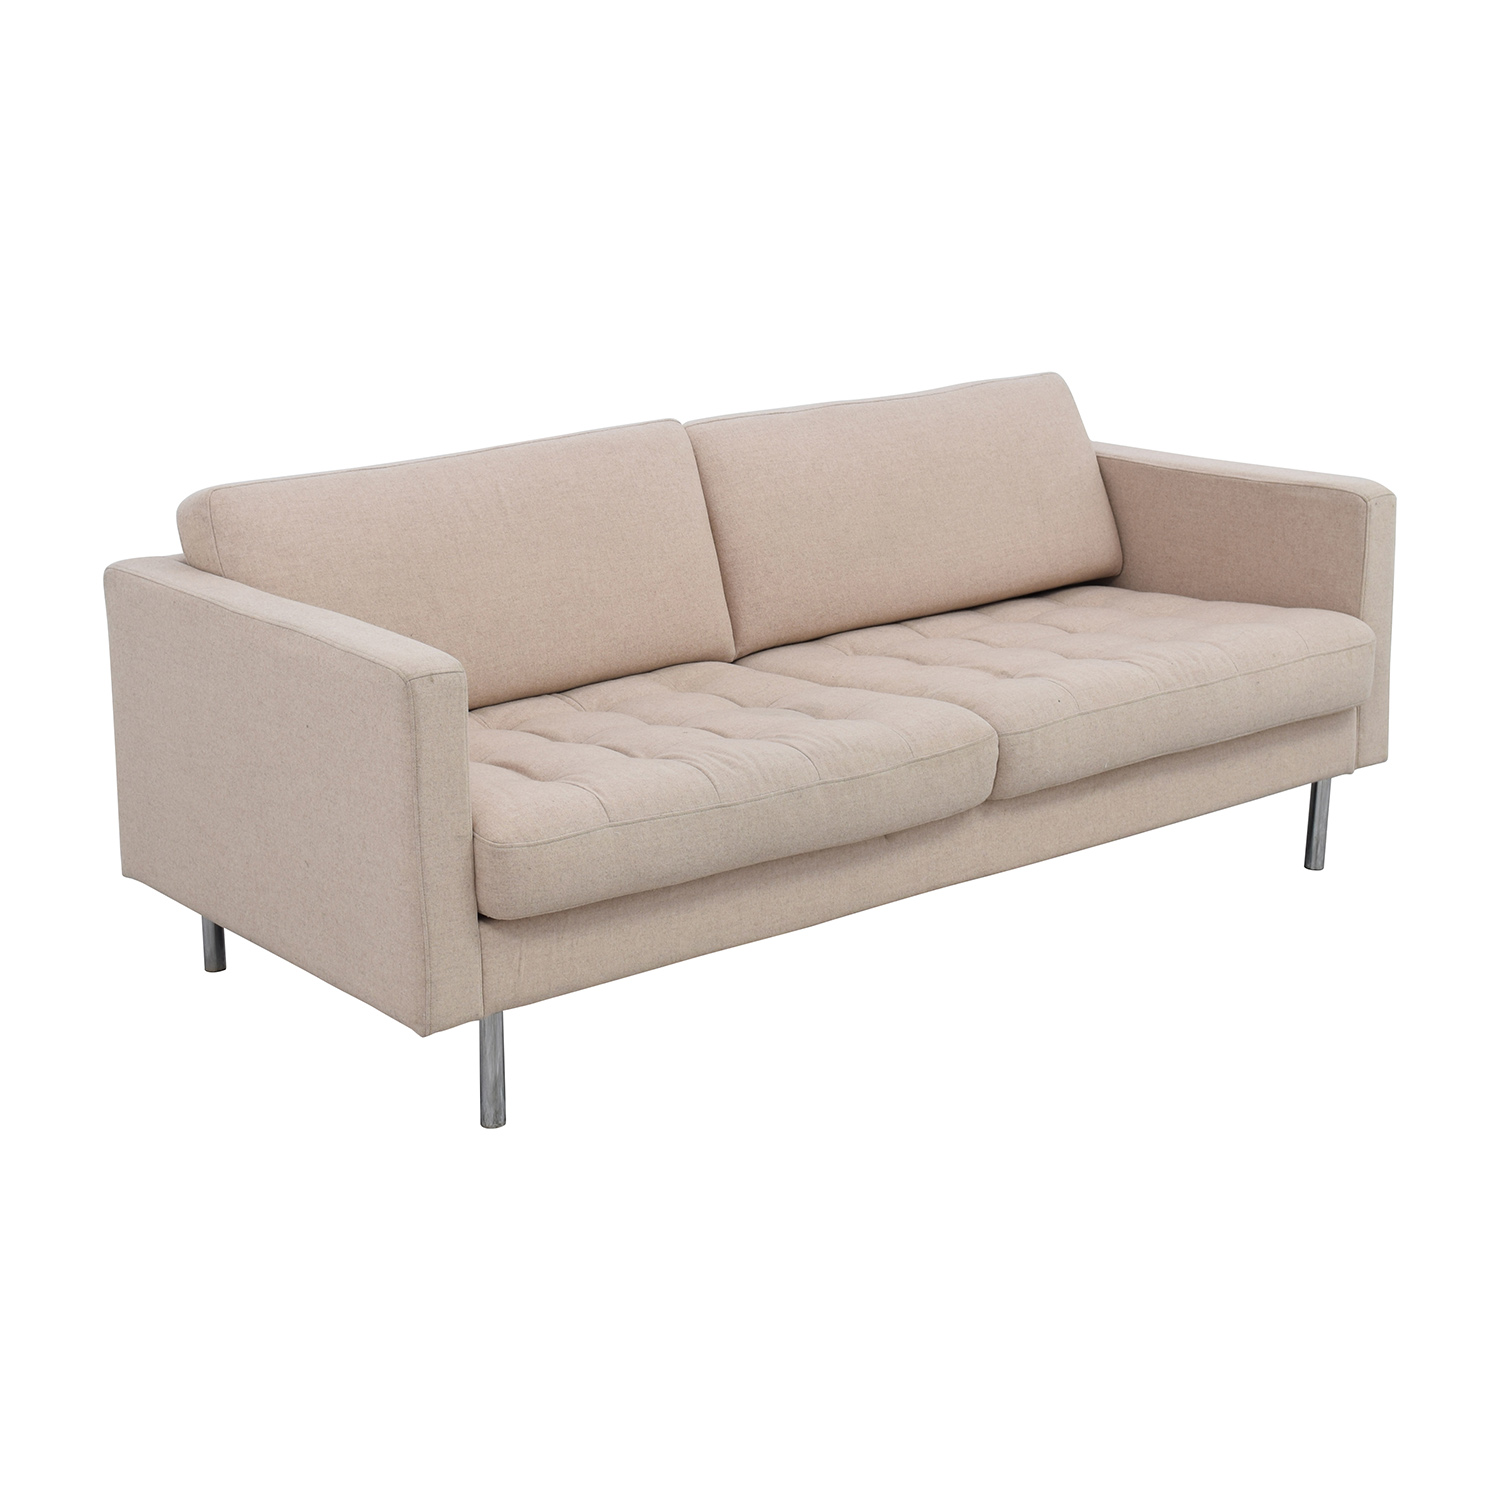 65 off boconcept boconcept carmo sand two tufted cushion sofa sofas. Black Bedroom Furniture Sets. Home Design Ideas